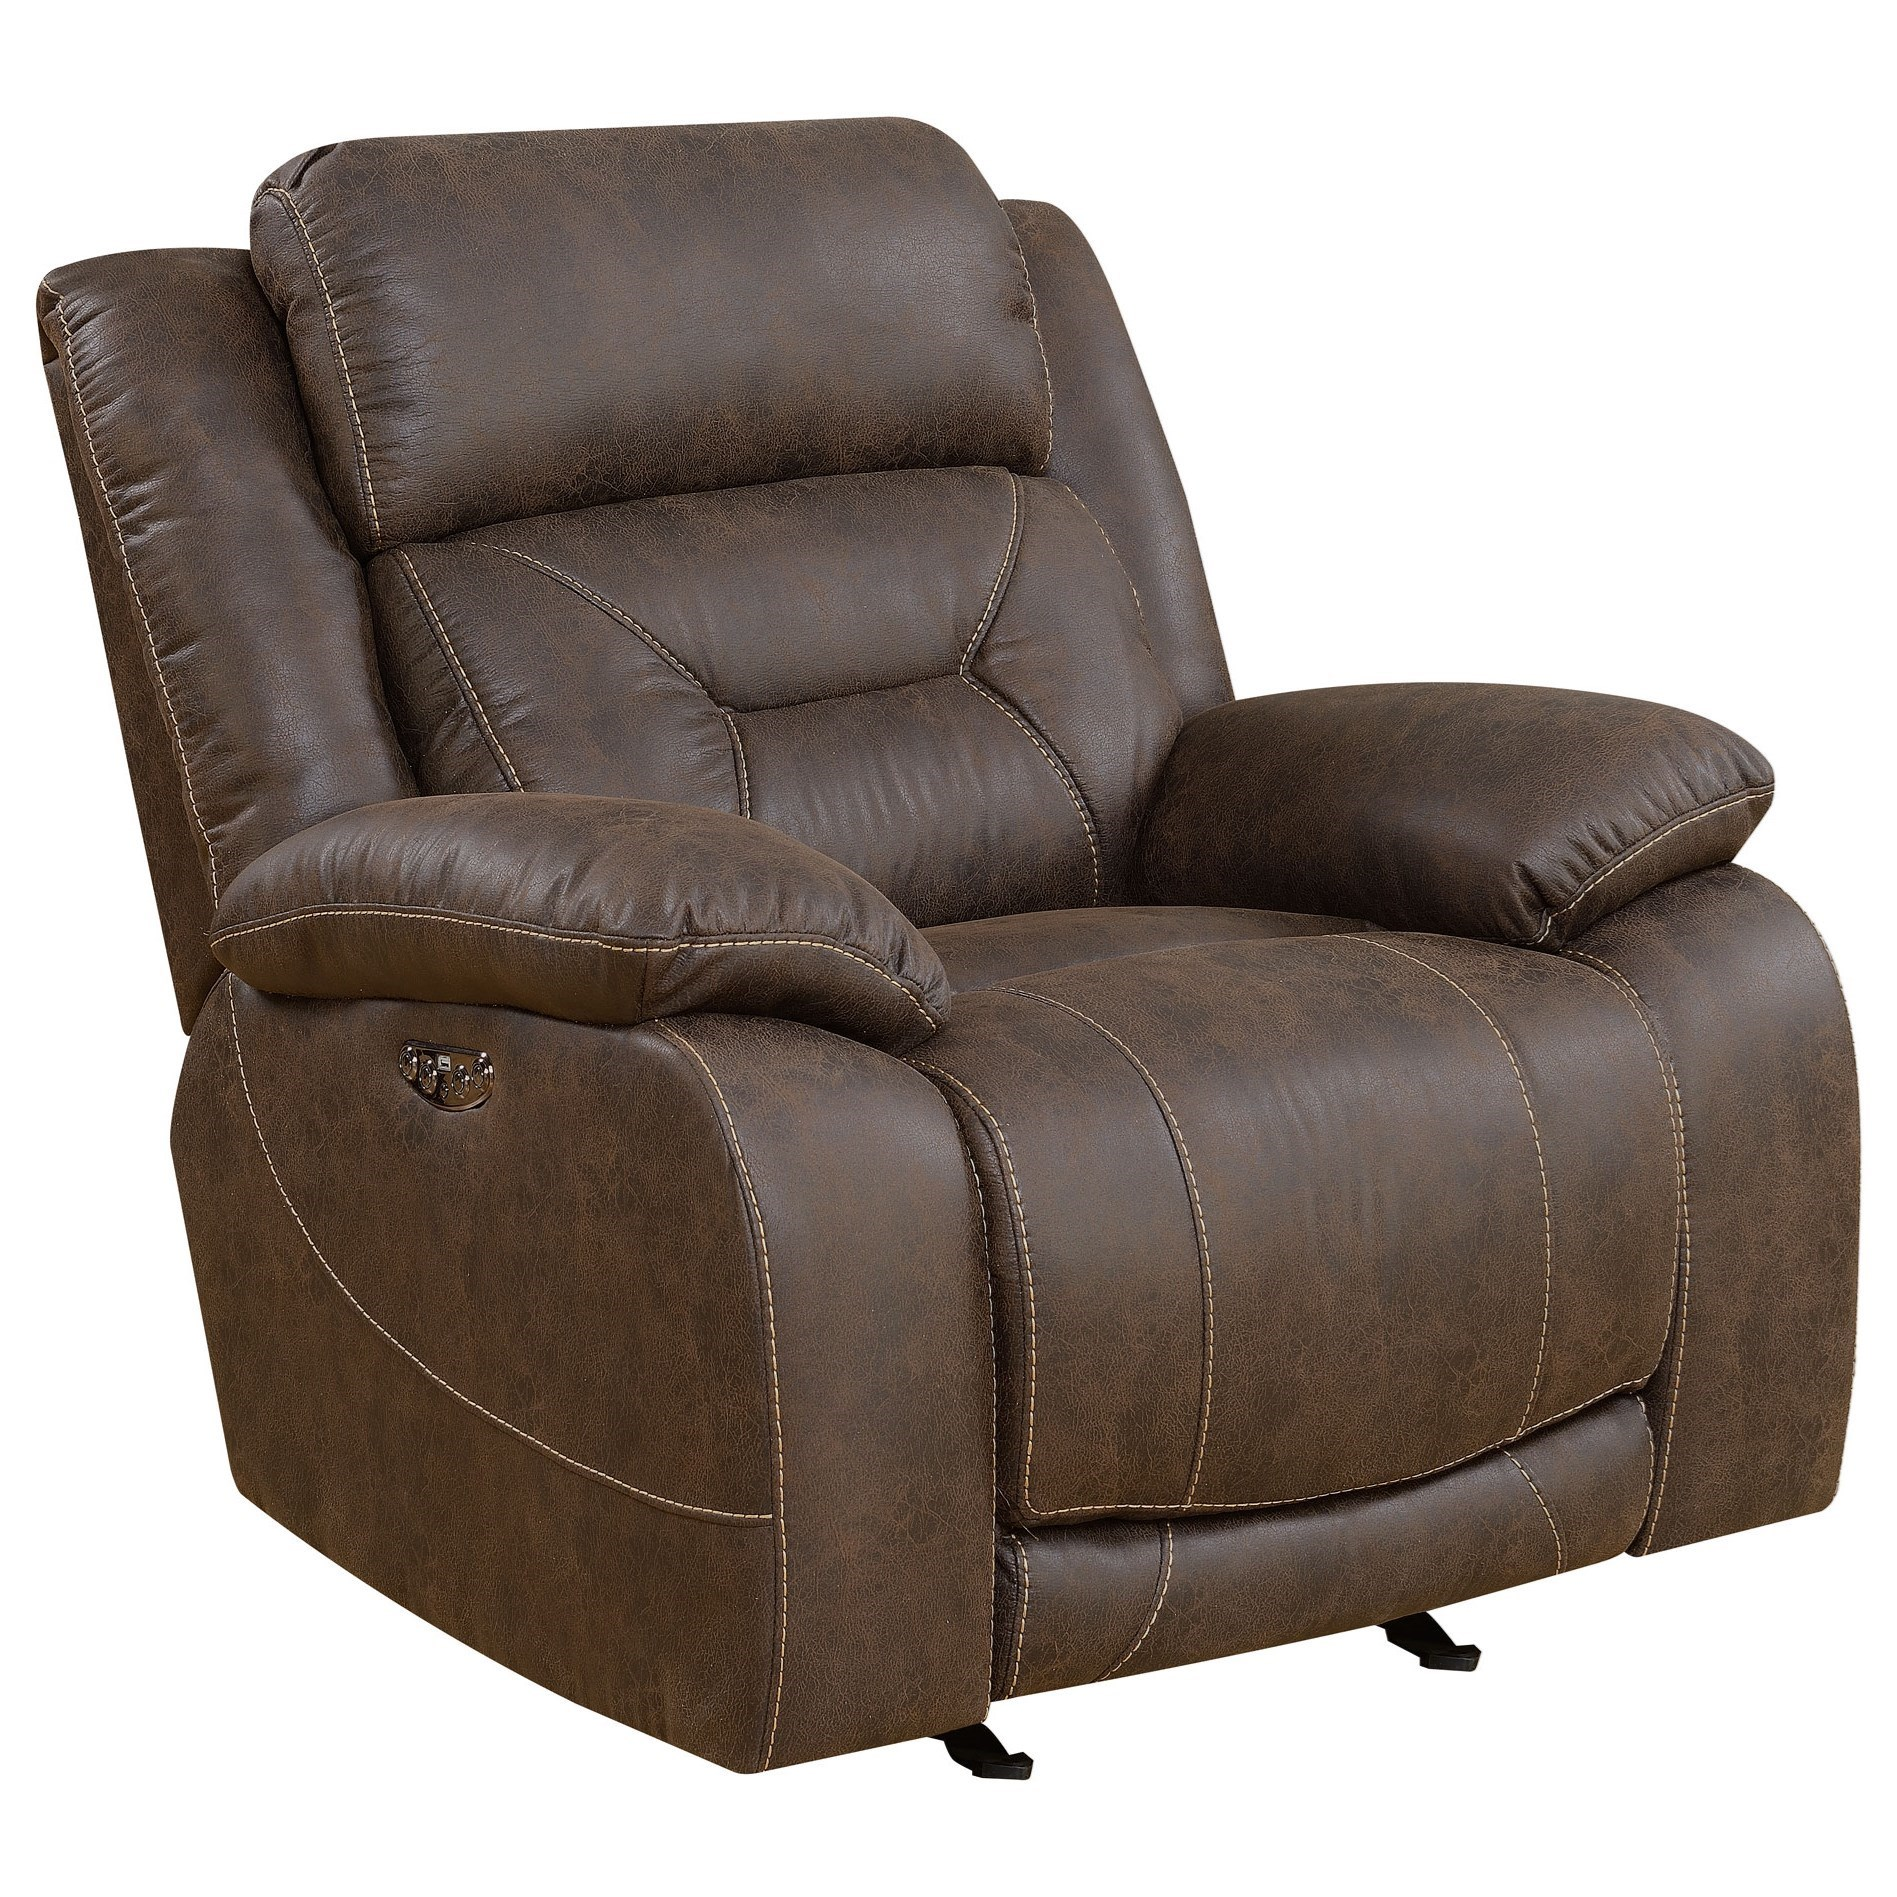 Aria Power Recliner by Steve Silver at Standard Furniture